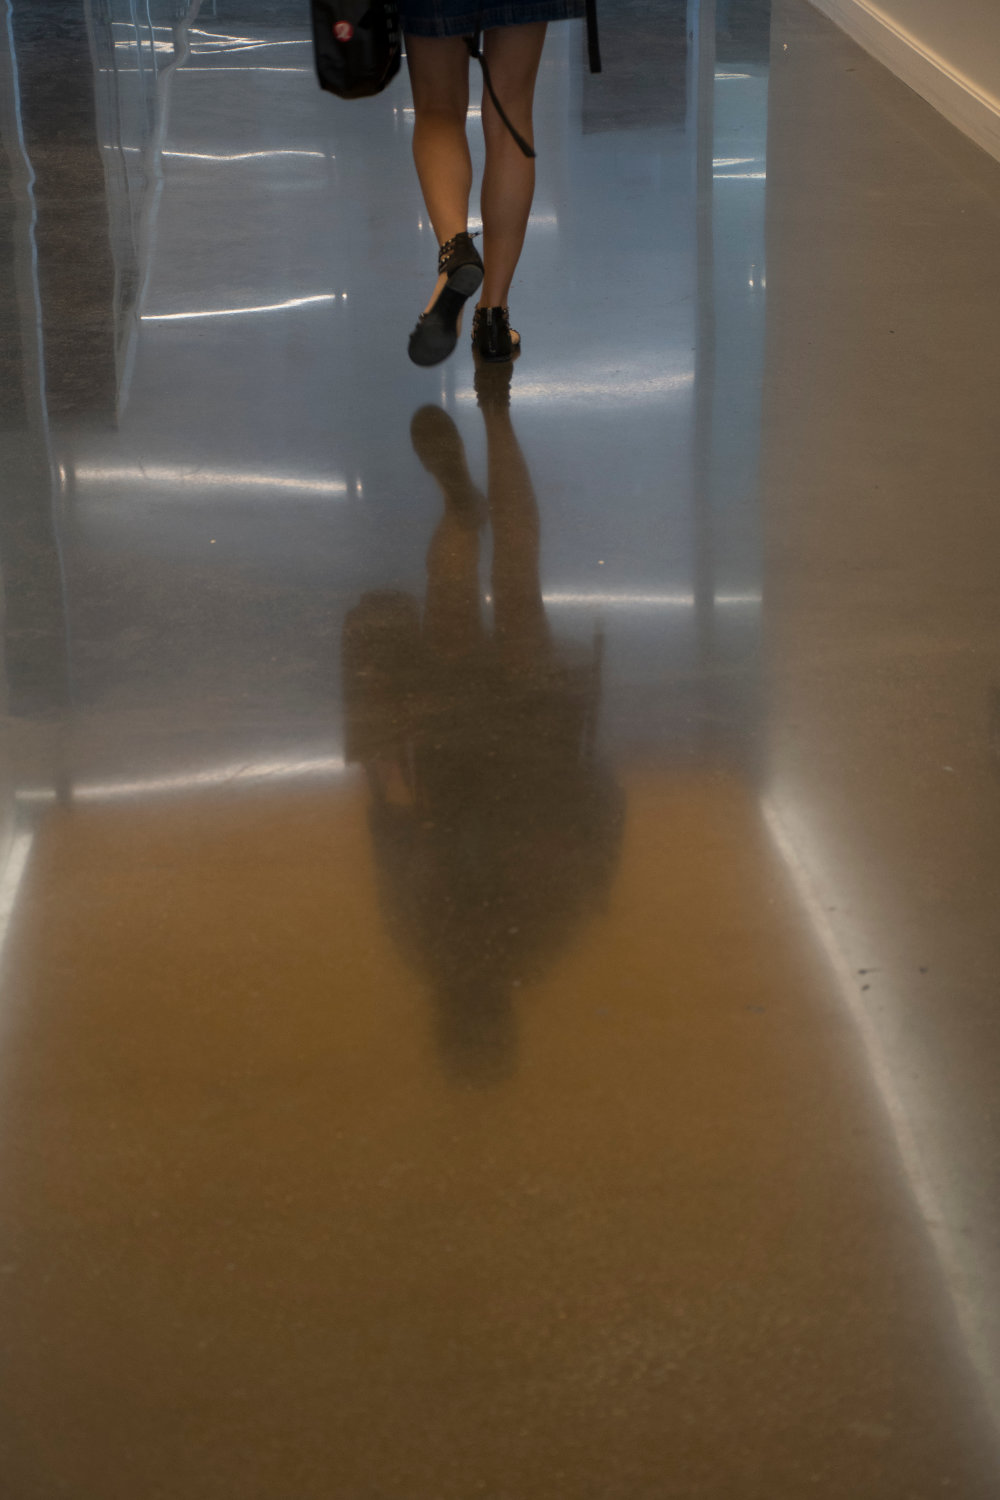 The smooth concrete hallway reflects the lights from the lighting above.